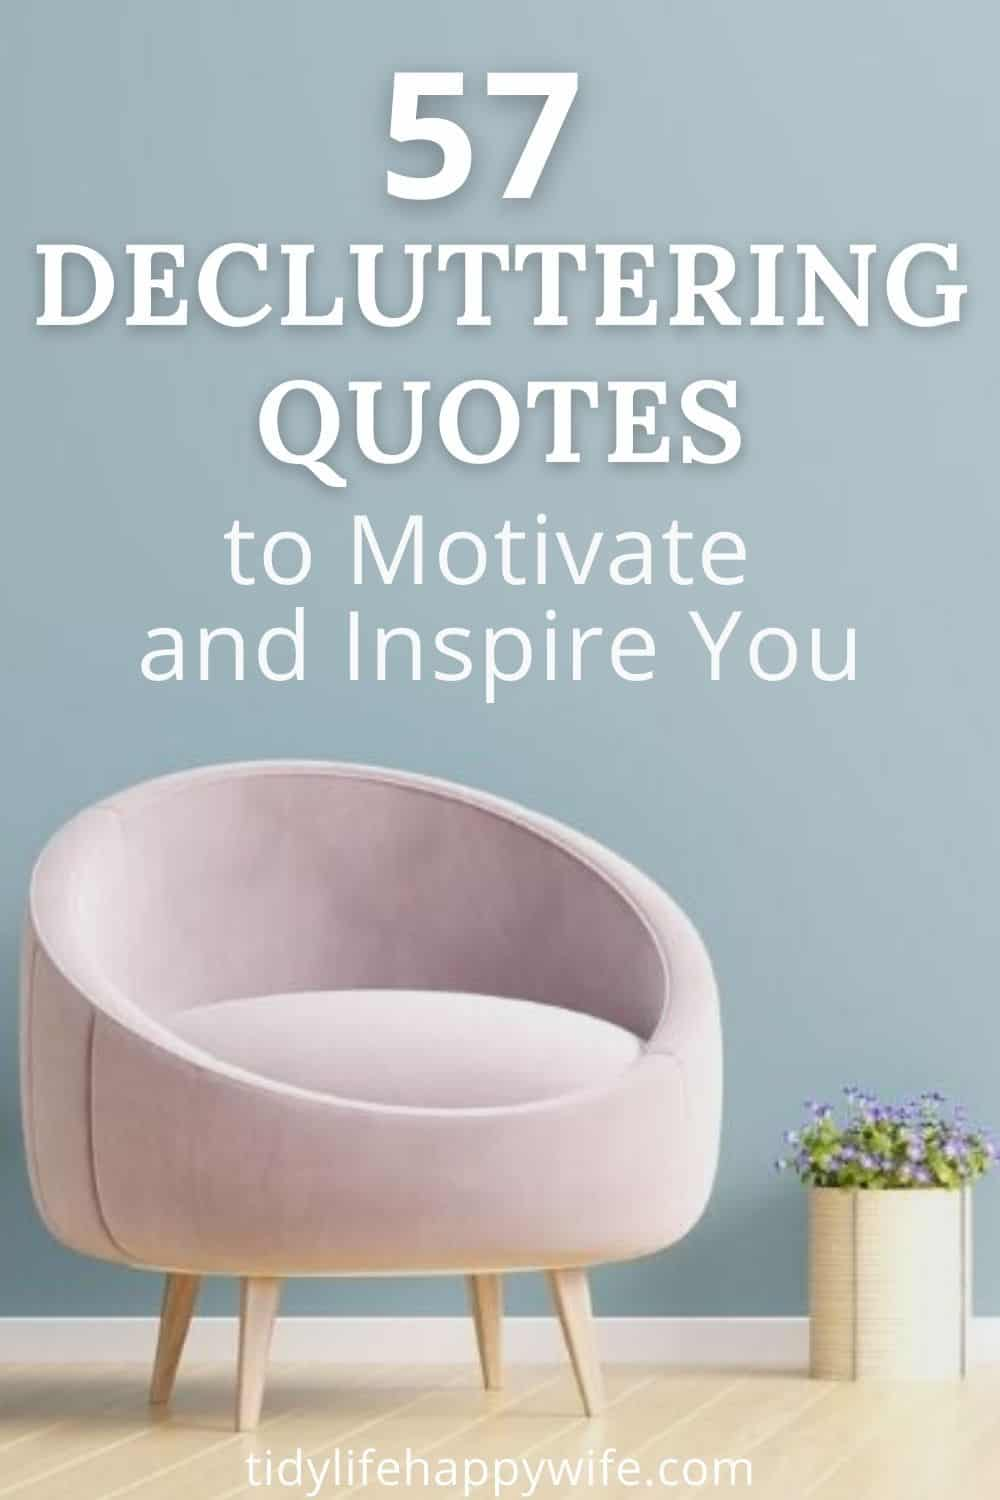 Can't seem to declutter? Here's a collection of clutter quotes that are sure to inspire and motivate you to start decluttering today. Quotes that describe what clutter is, how it impacts you, and what you should do about it. via @Tidylifehappywife